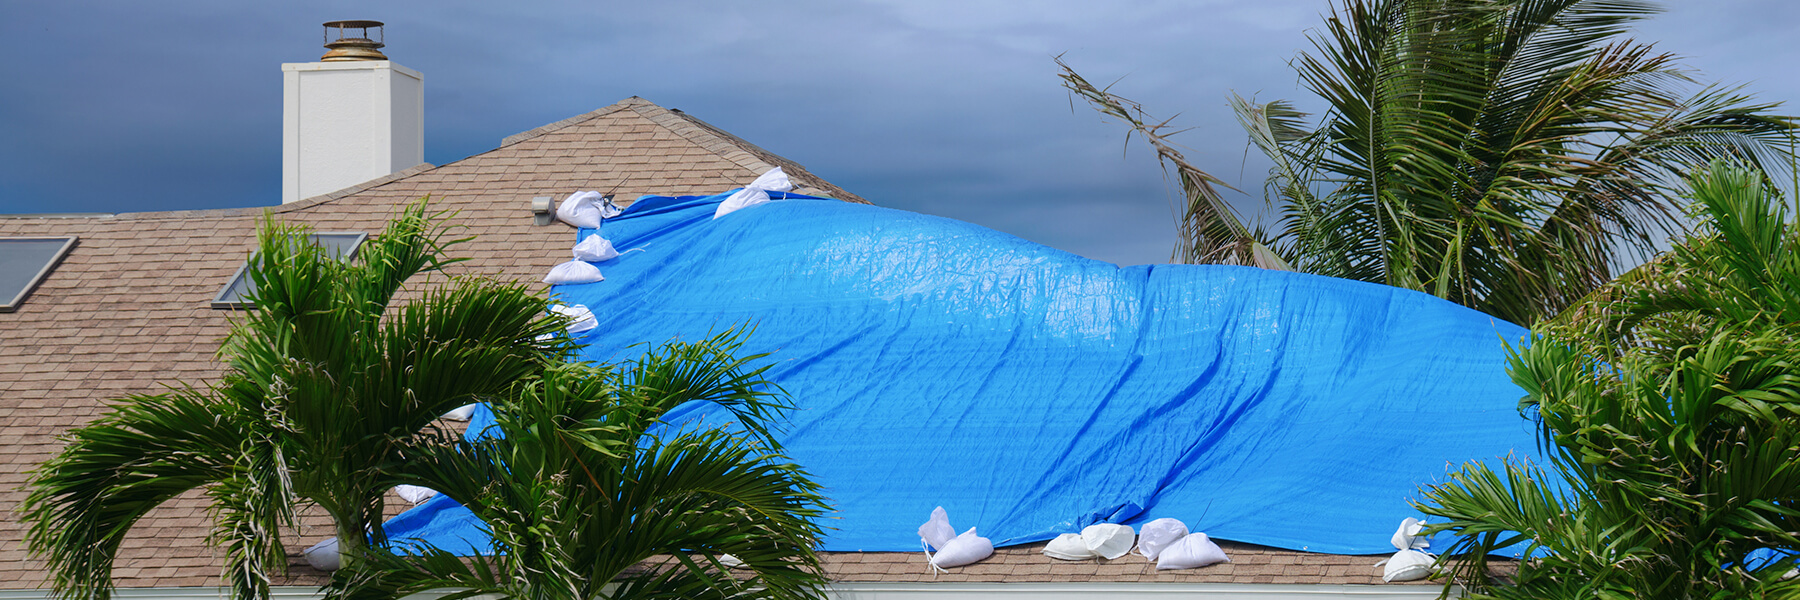 Home and Roof Shapes that Hold Up Best to Hurricanes